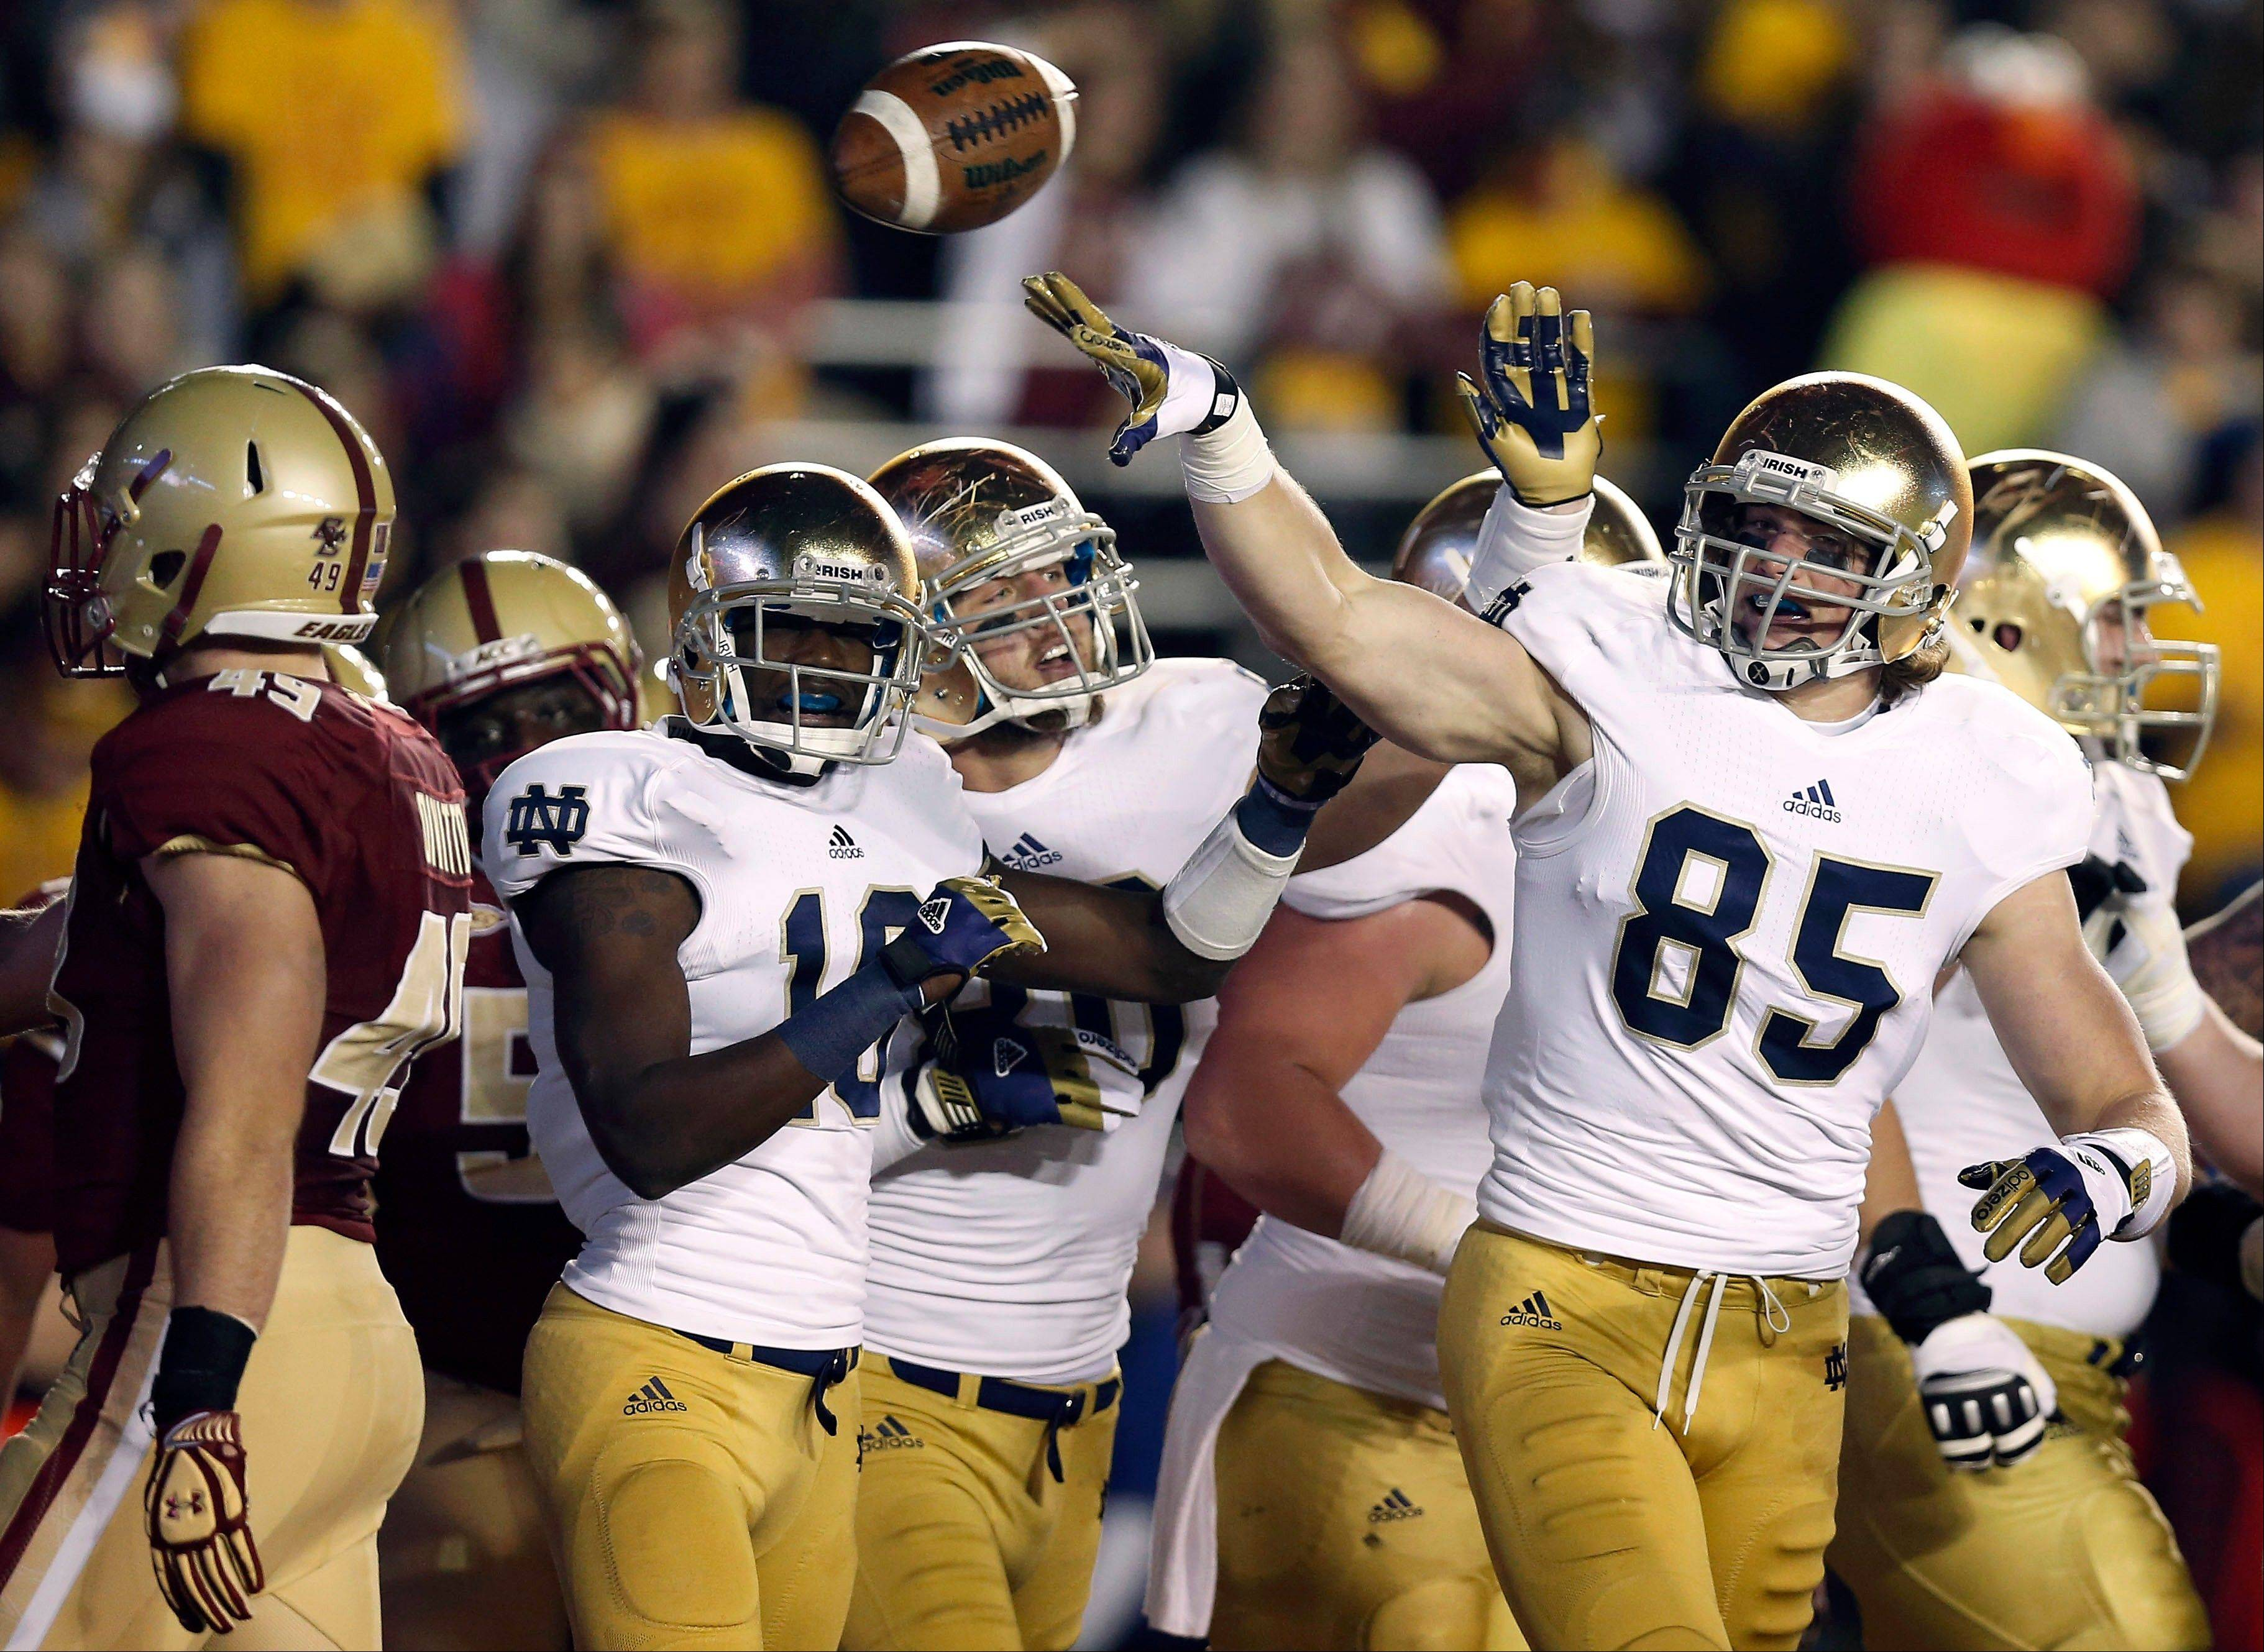 Notre Dame tight end Troy Niklas (85) celebrates with teammates Saturday after catching a touchdown pass against the Boston College during the first half in Boston.